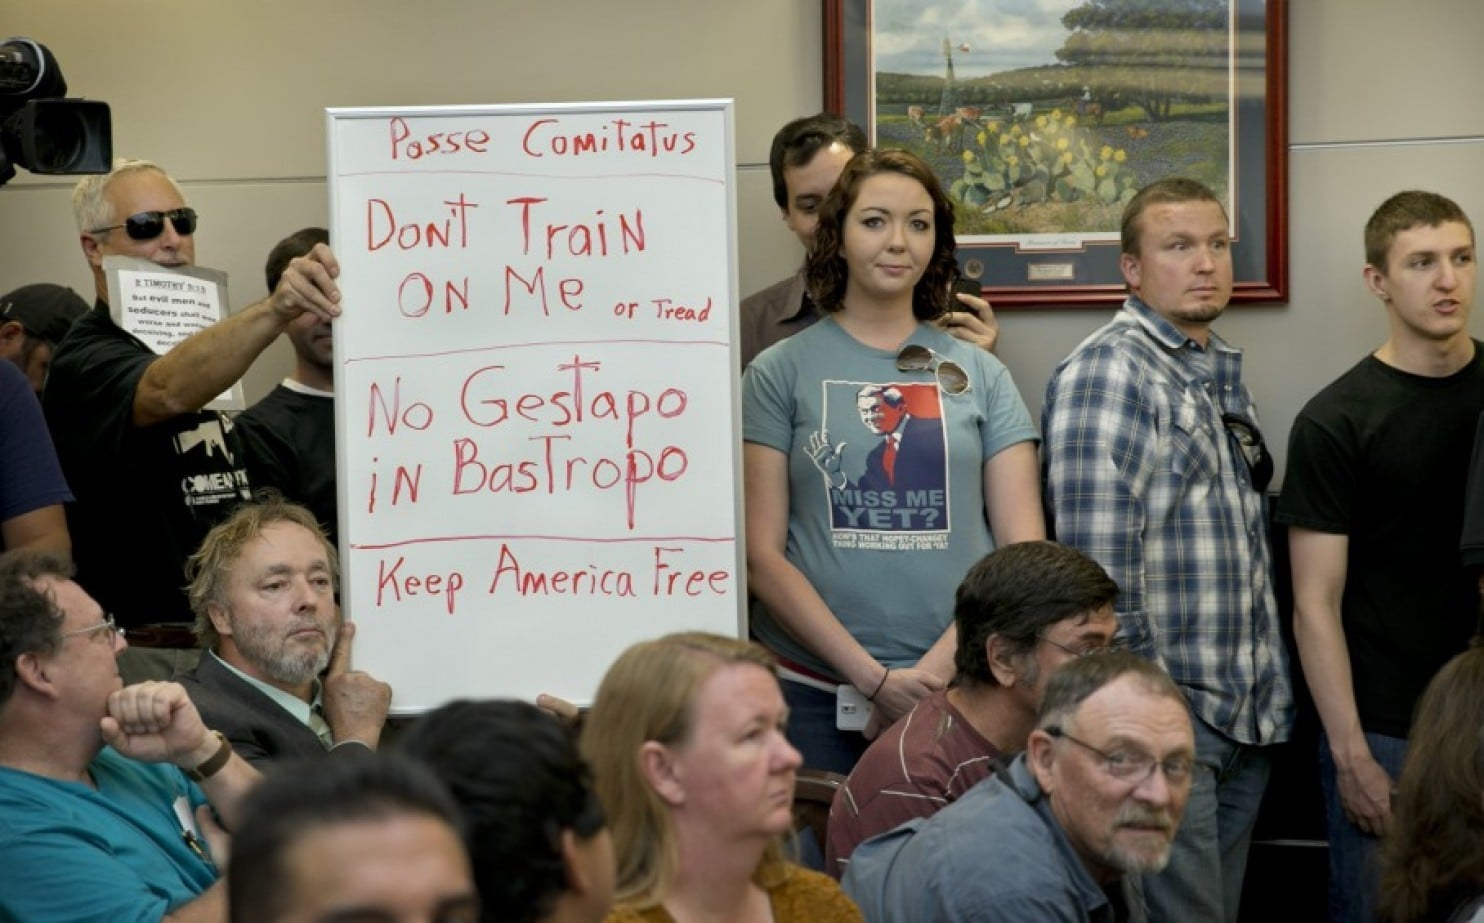 Local residents in Bastrop County Texas this week protested an upcoming military exercise in the state, leading Gov. Abbott to call out the State Guard to monitor the event. (Photo: Austin American-Statesman)